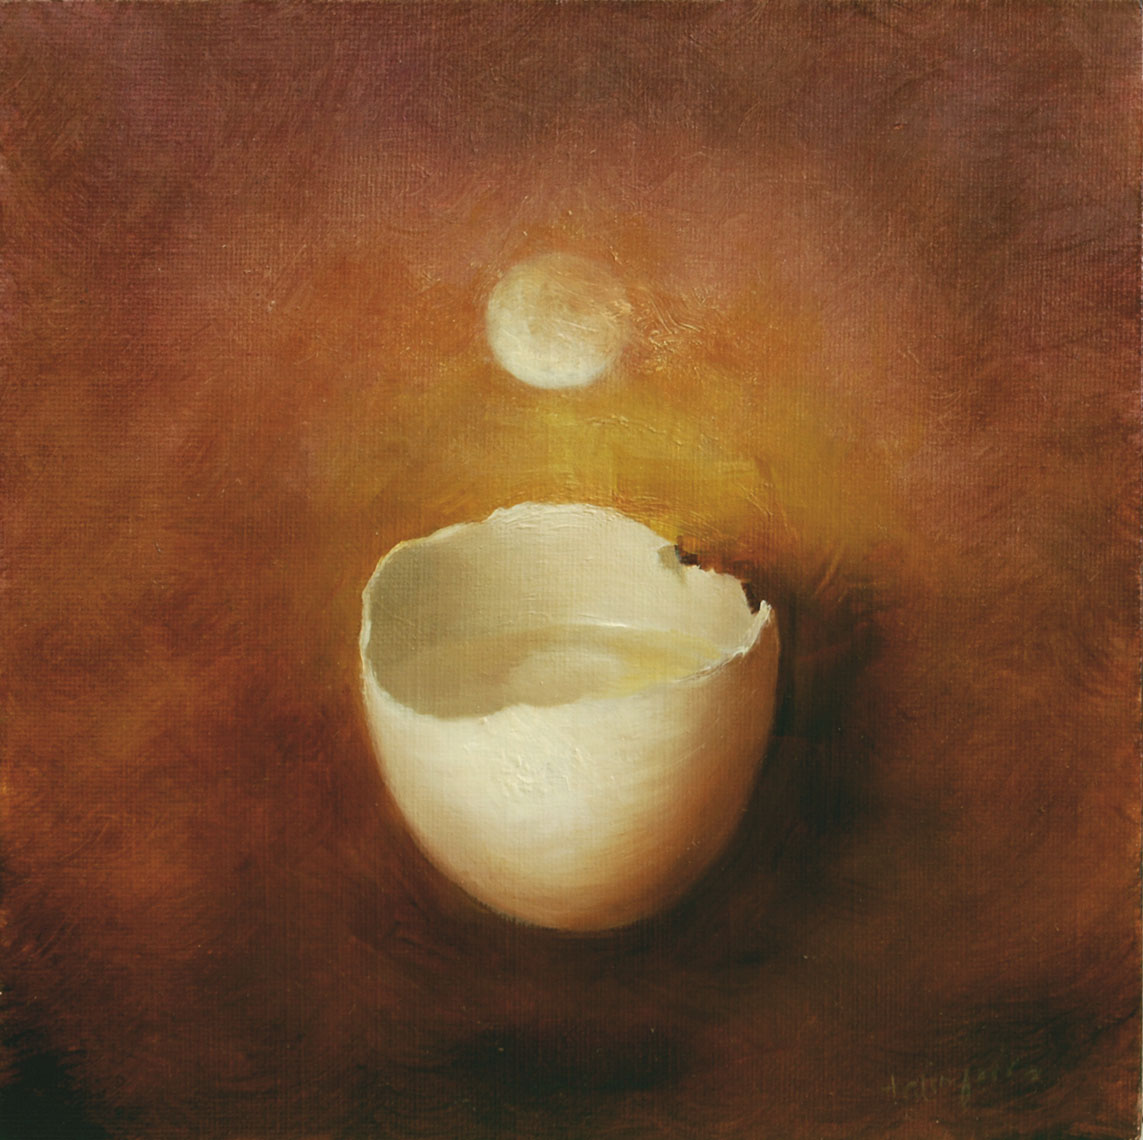 EGGSHELL WITH MOON